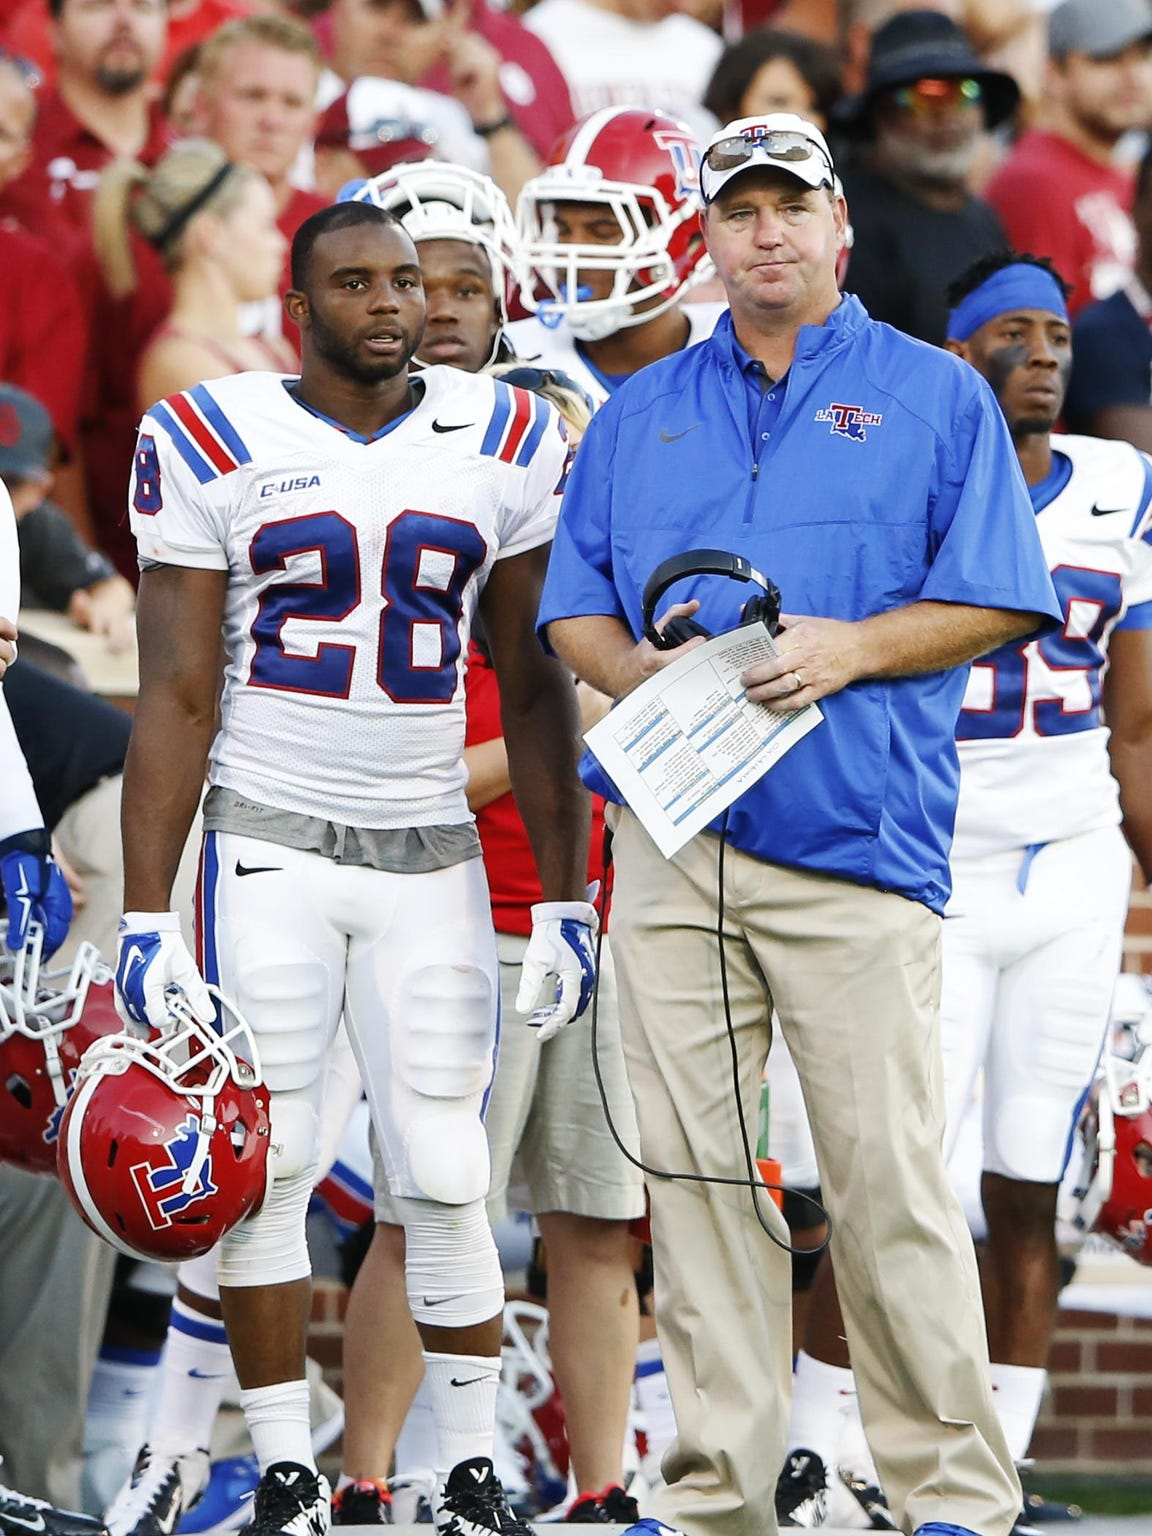 Running back Kenneth Dixon, shown with Tech coach Skip